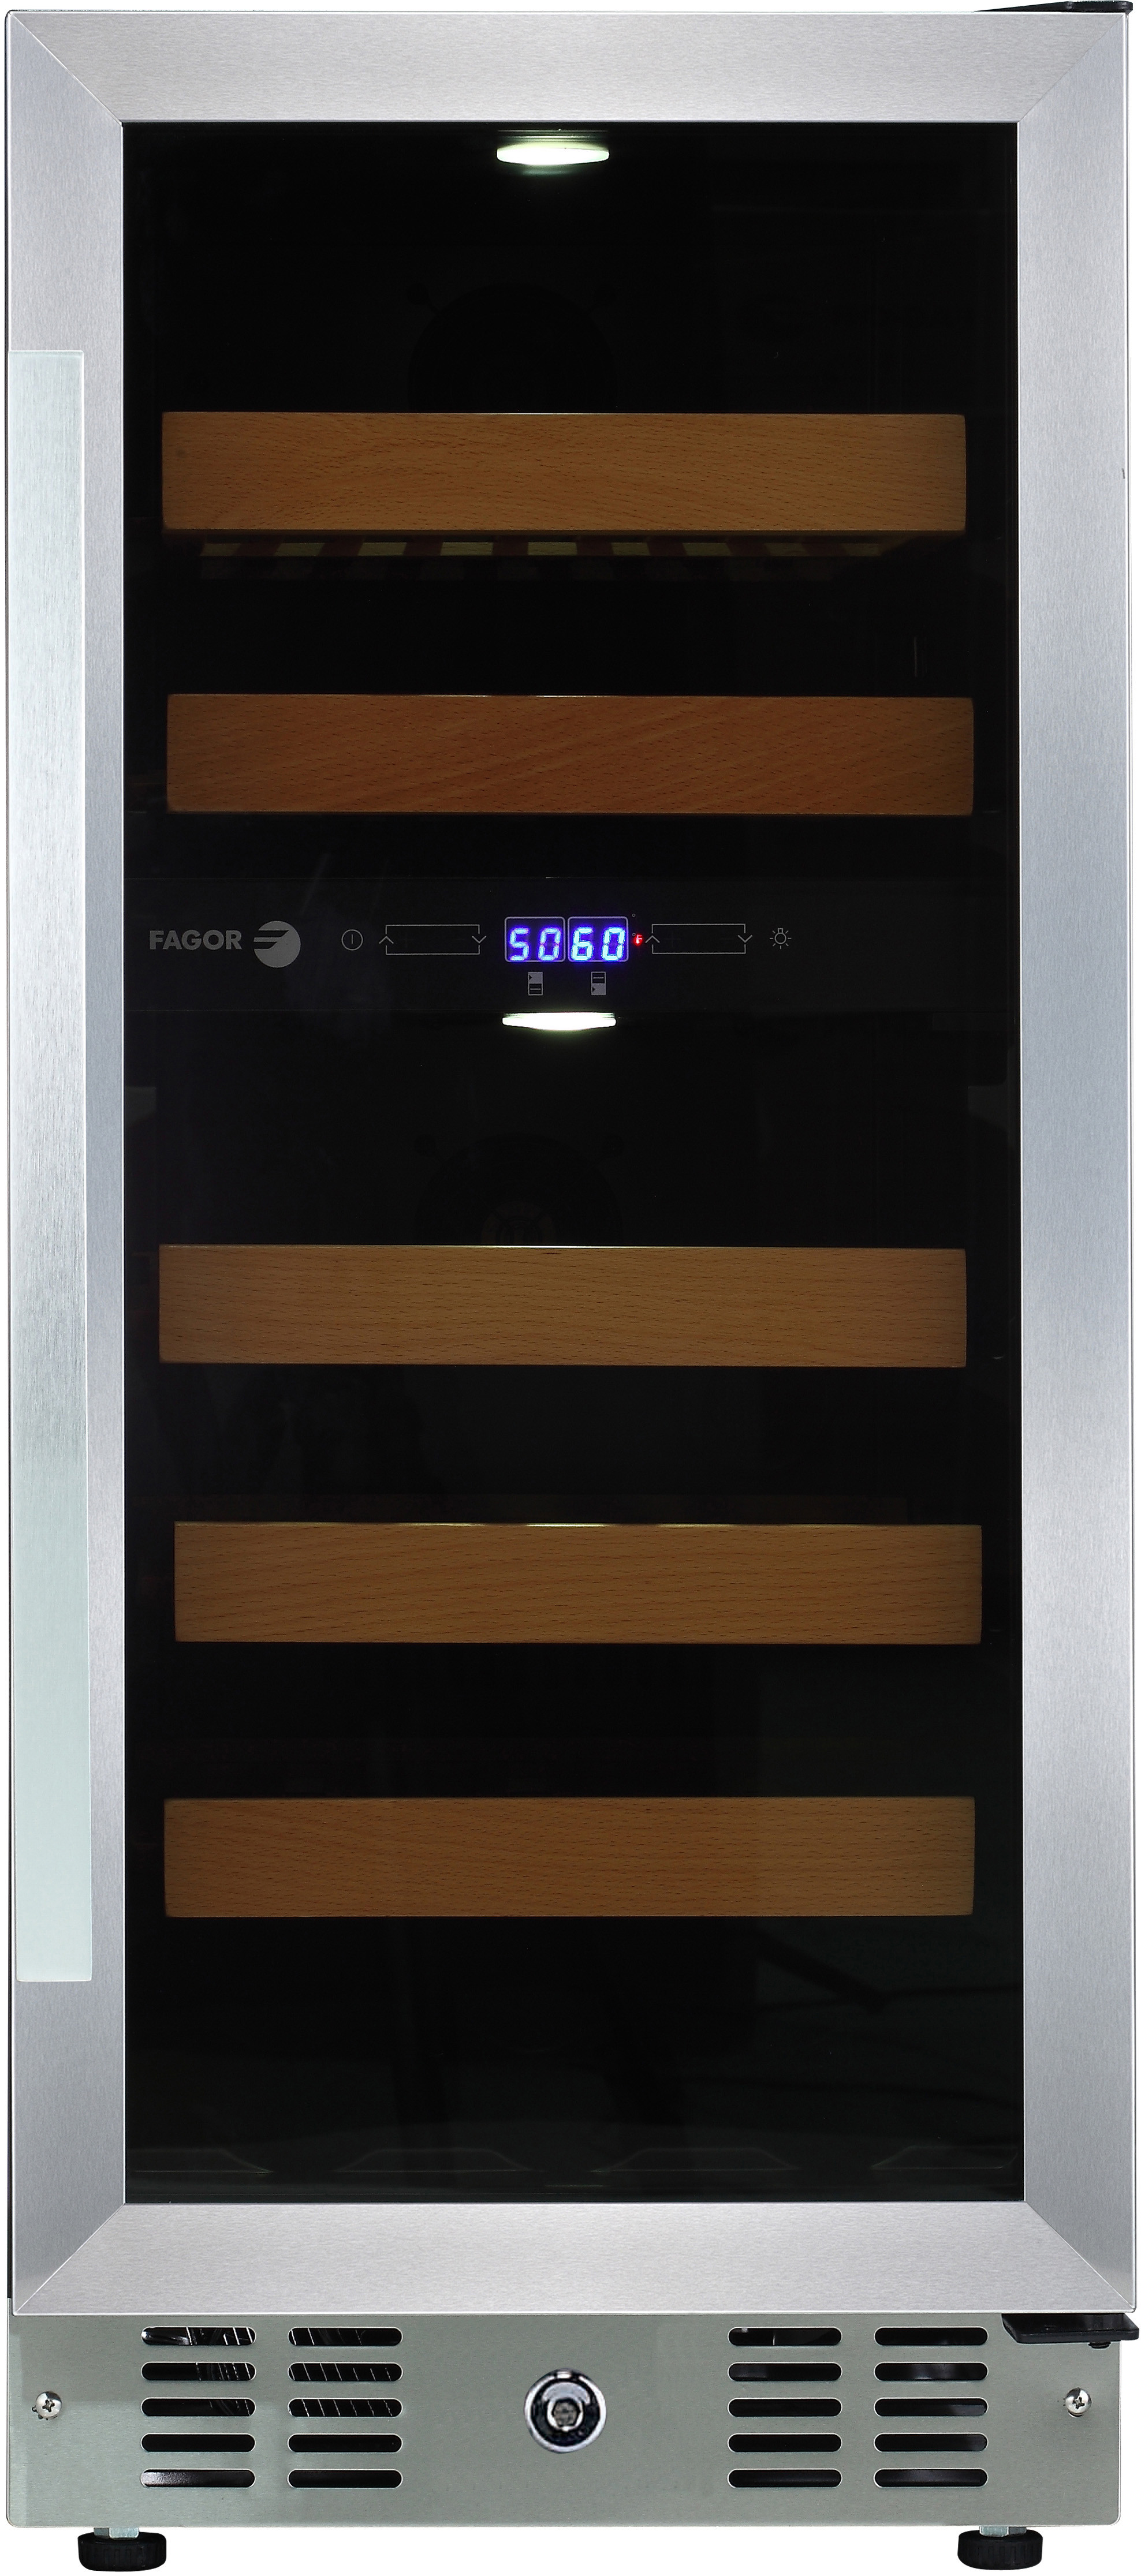 Fagor Wc28dz 15 Inch Tower Wine Cooler With 28 Bottle Capacity 2 Temperature Zones Led Digital Controls 5 Beachwood Wine Racks Reversible Door Vibration Neutralization System And Sabbath Mode